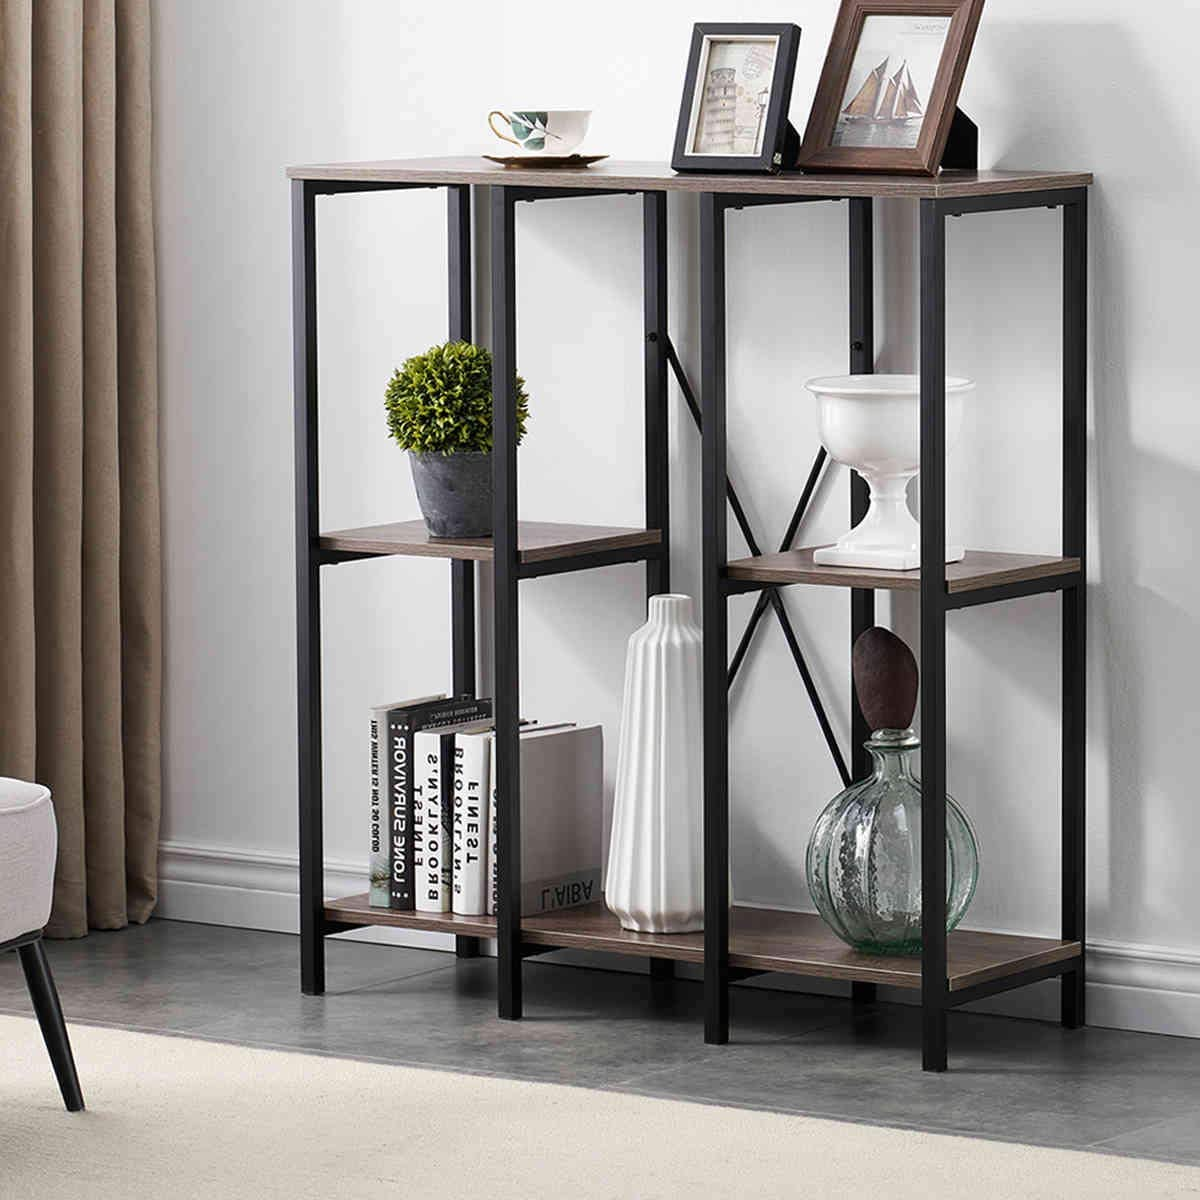 SHOCOKO 3 Tier Rustic Bookshelf, Vintage Industrial Style Bookcase, Open Storage Display Shelves Organizer with Wood and Metal Frame for Furniture Home Office, Gray Oak